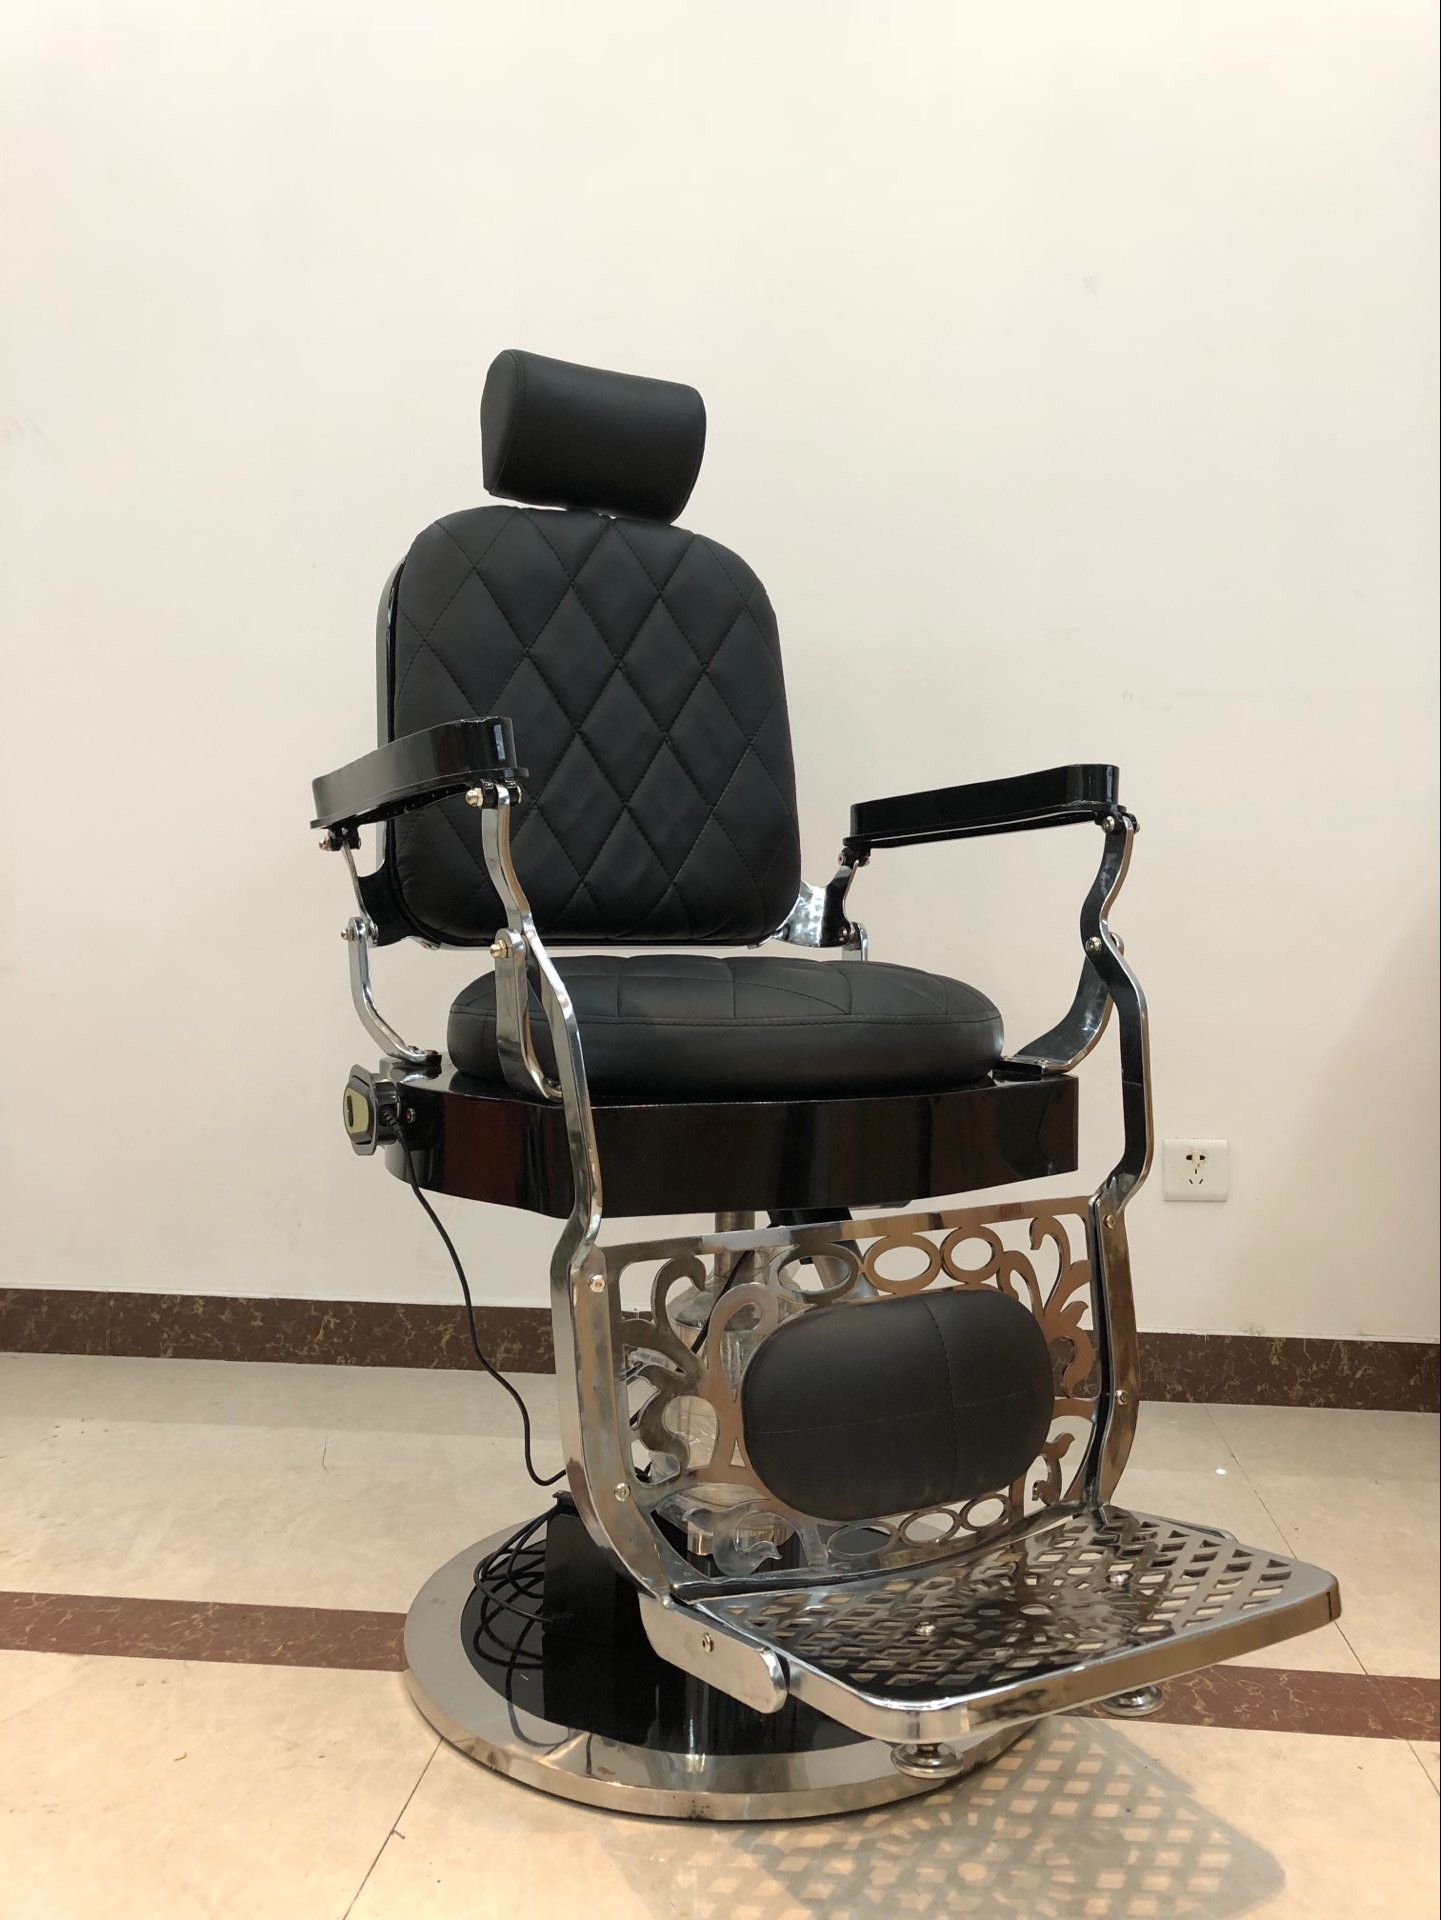 china vintage barber chair manufacturer with barber chair for sale of classical style barber chairs supplier china DS-T250